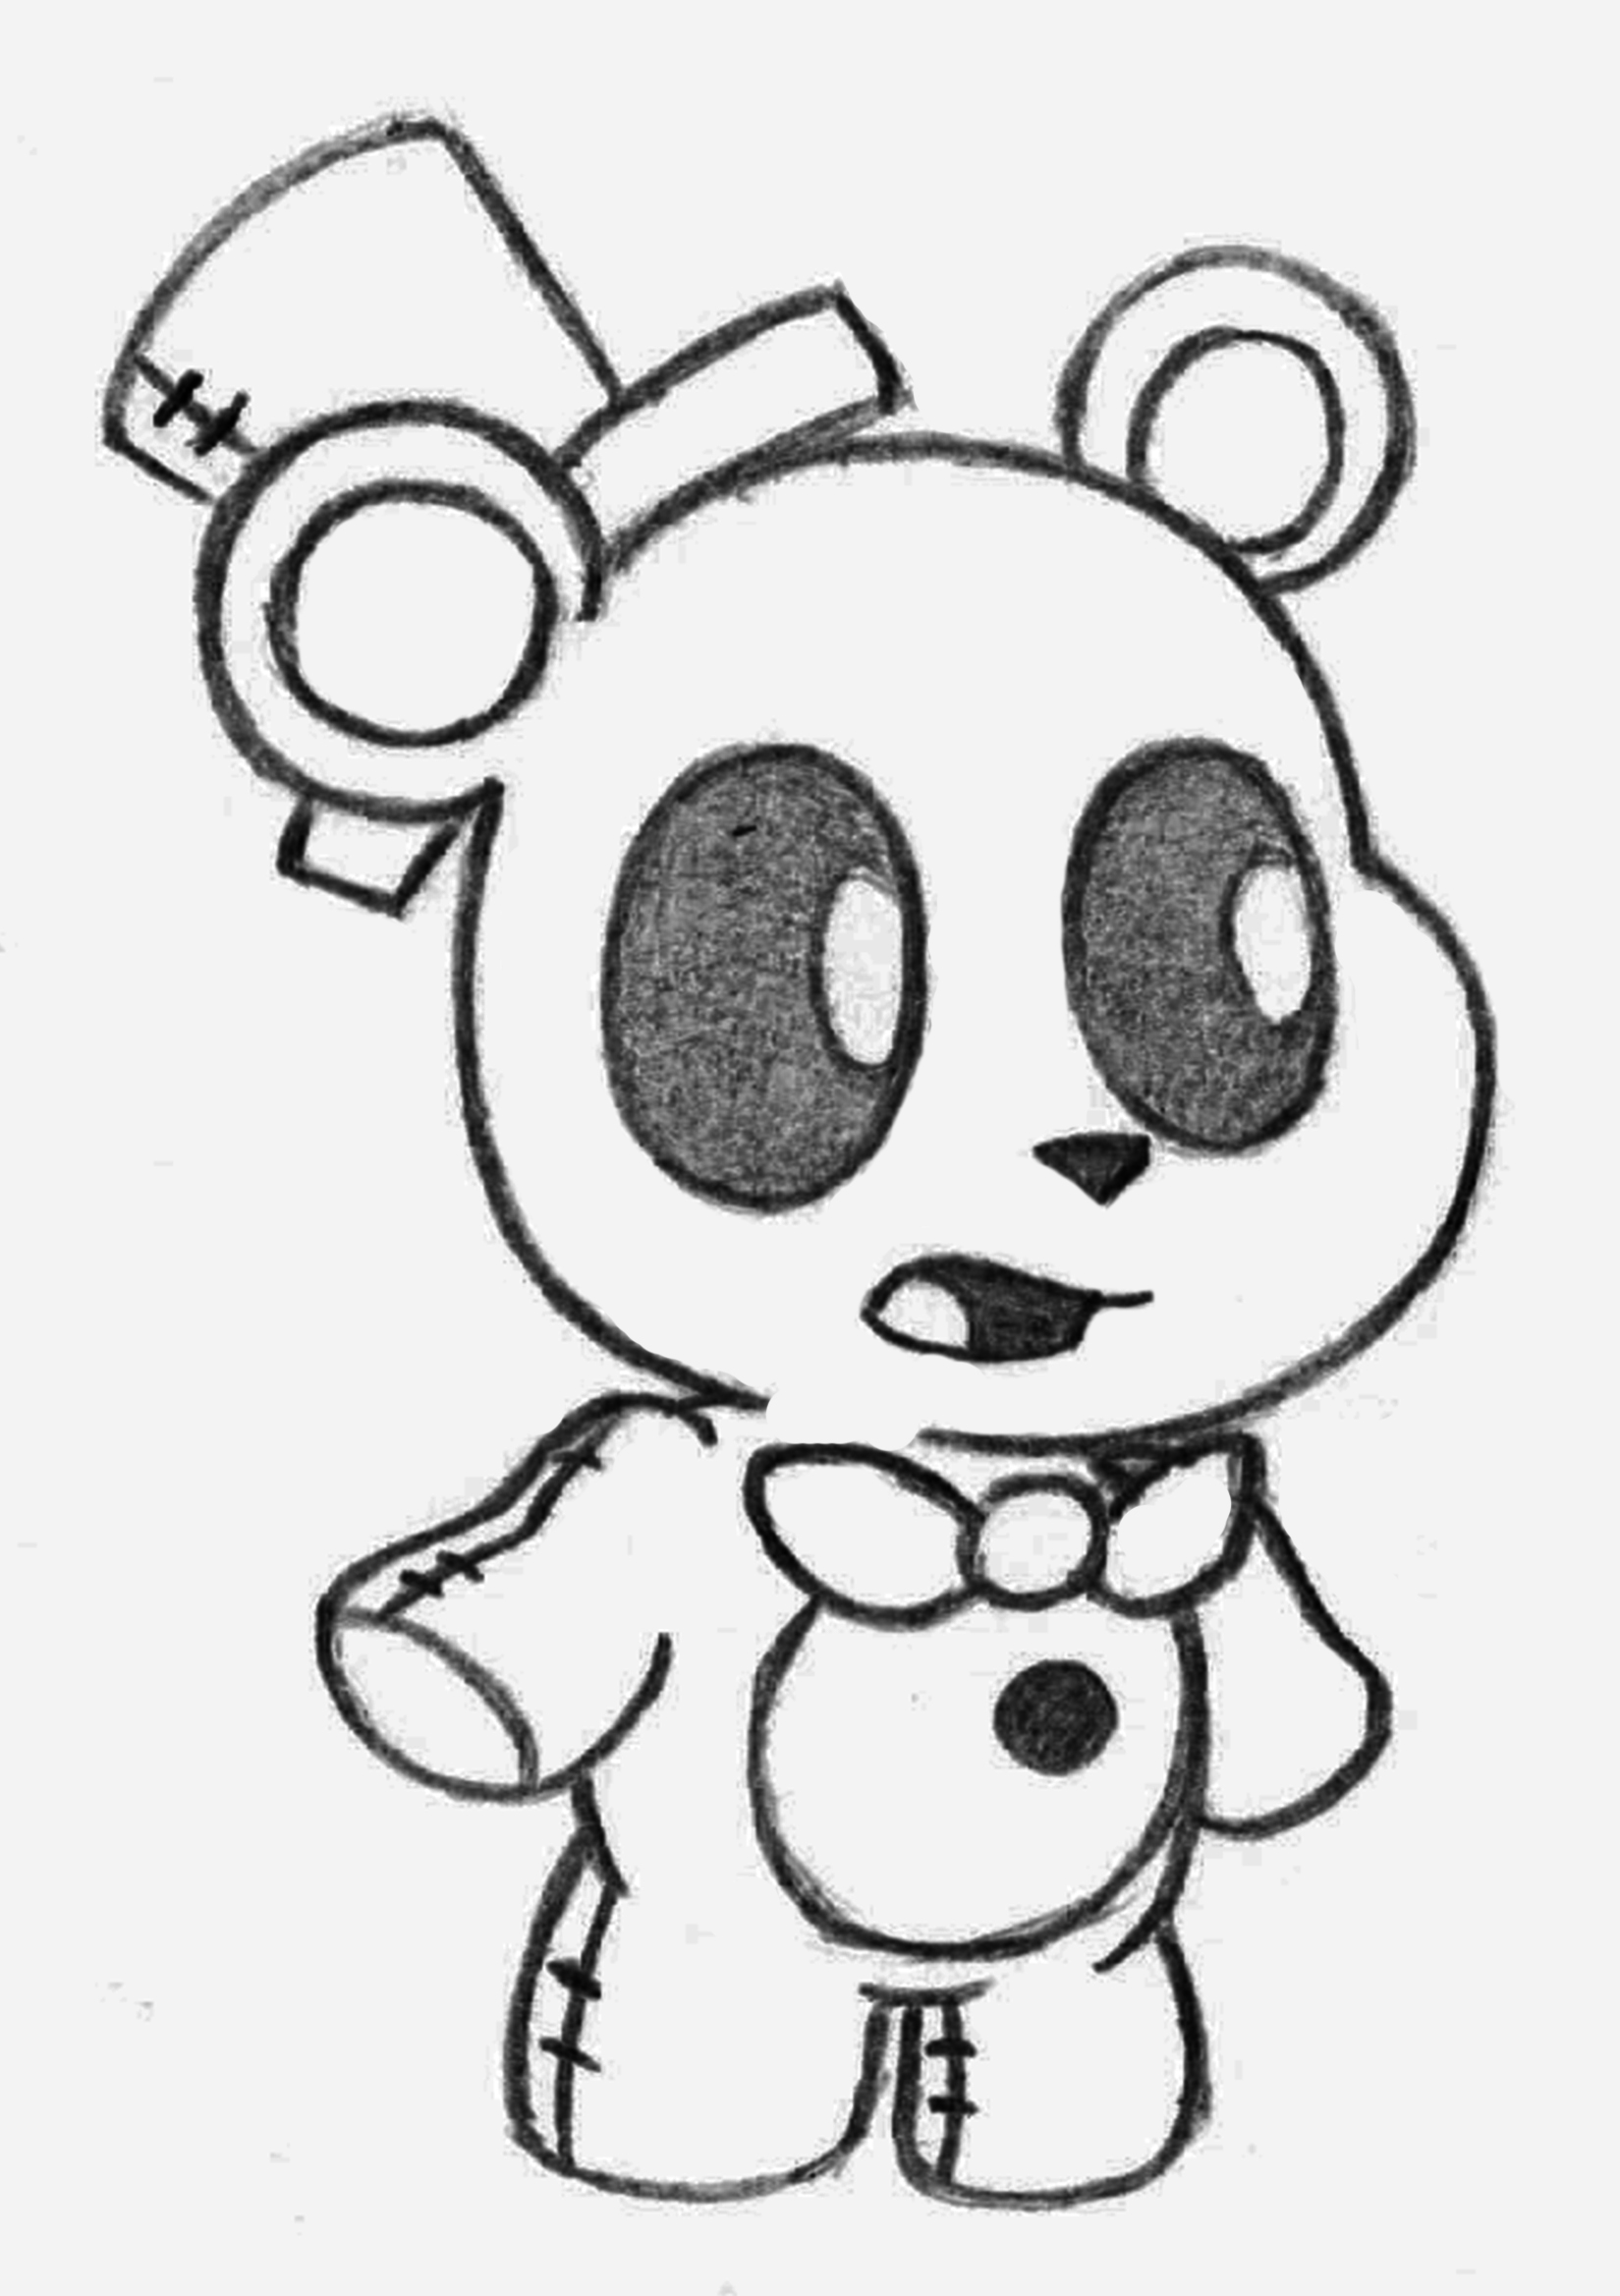 Fnaf Drawing at GetDrawings.com | Free for personal use Fnaf Drawing ...